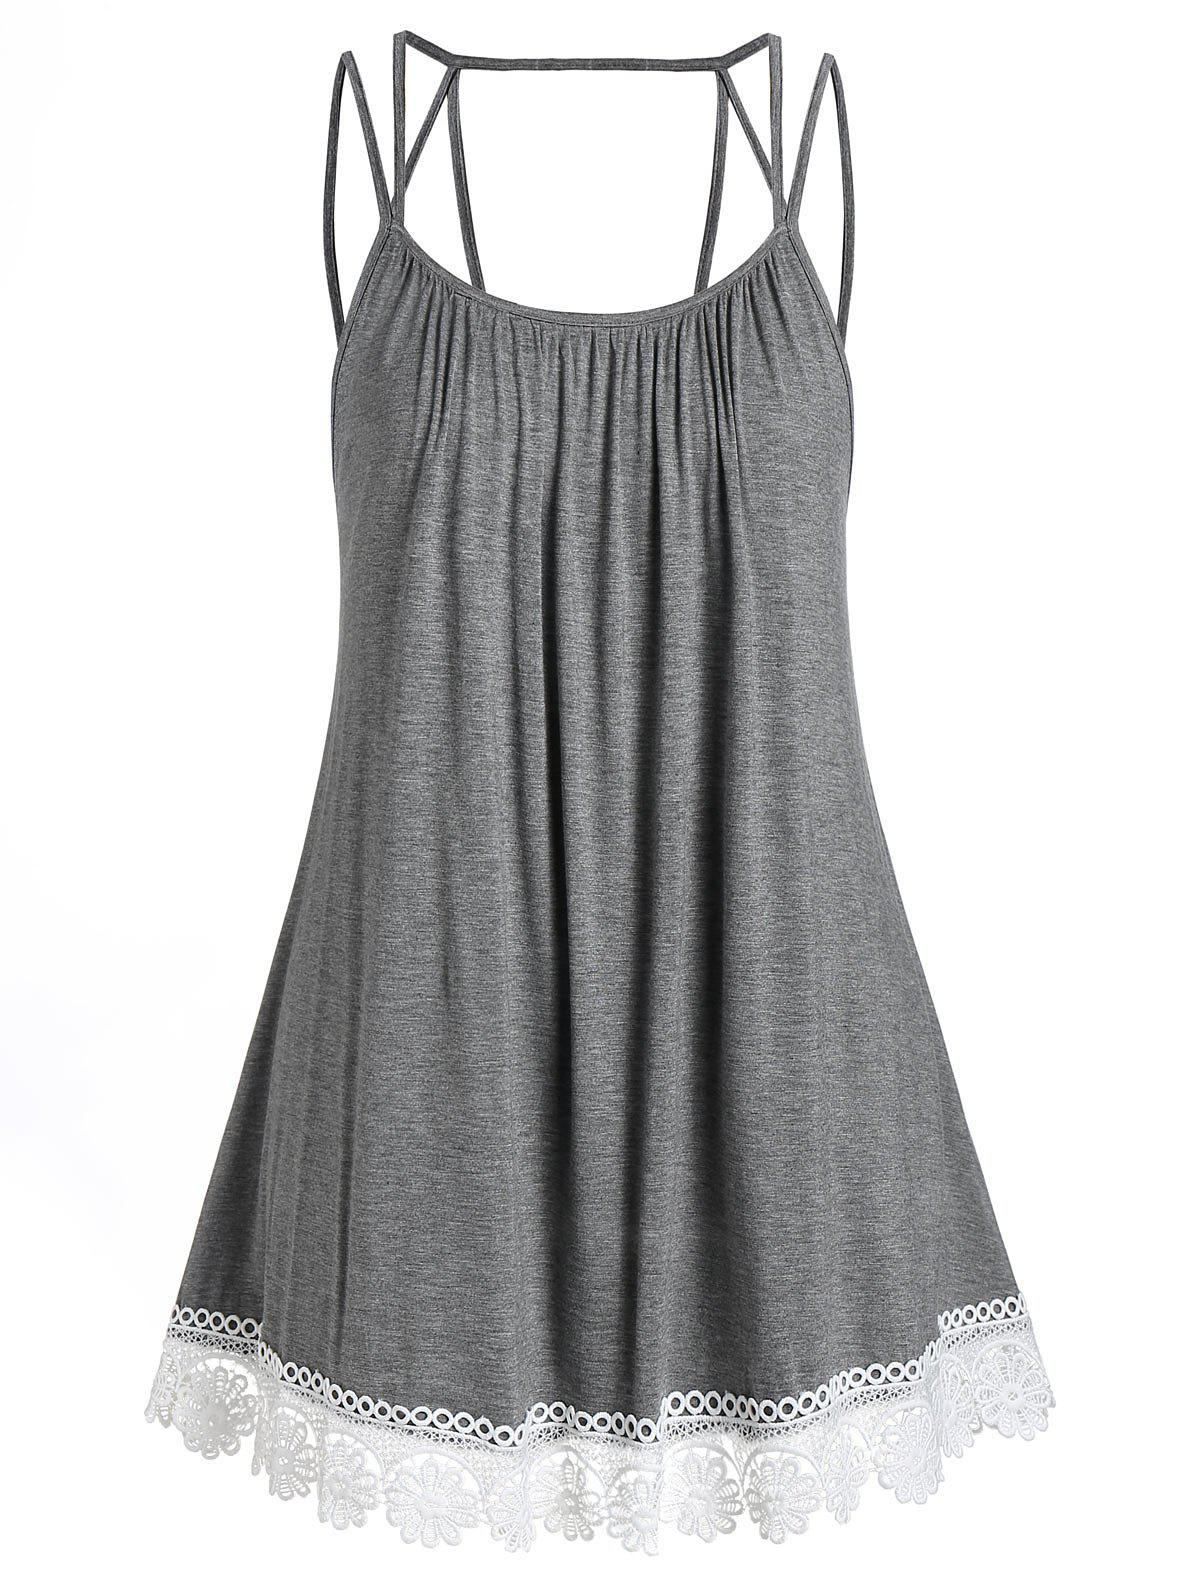 Plus Size Flare Cami Lace Panel Tank Top - CLOUDY GRAY L